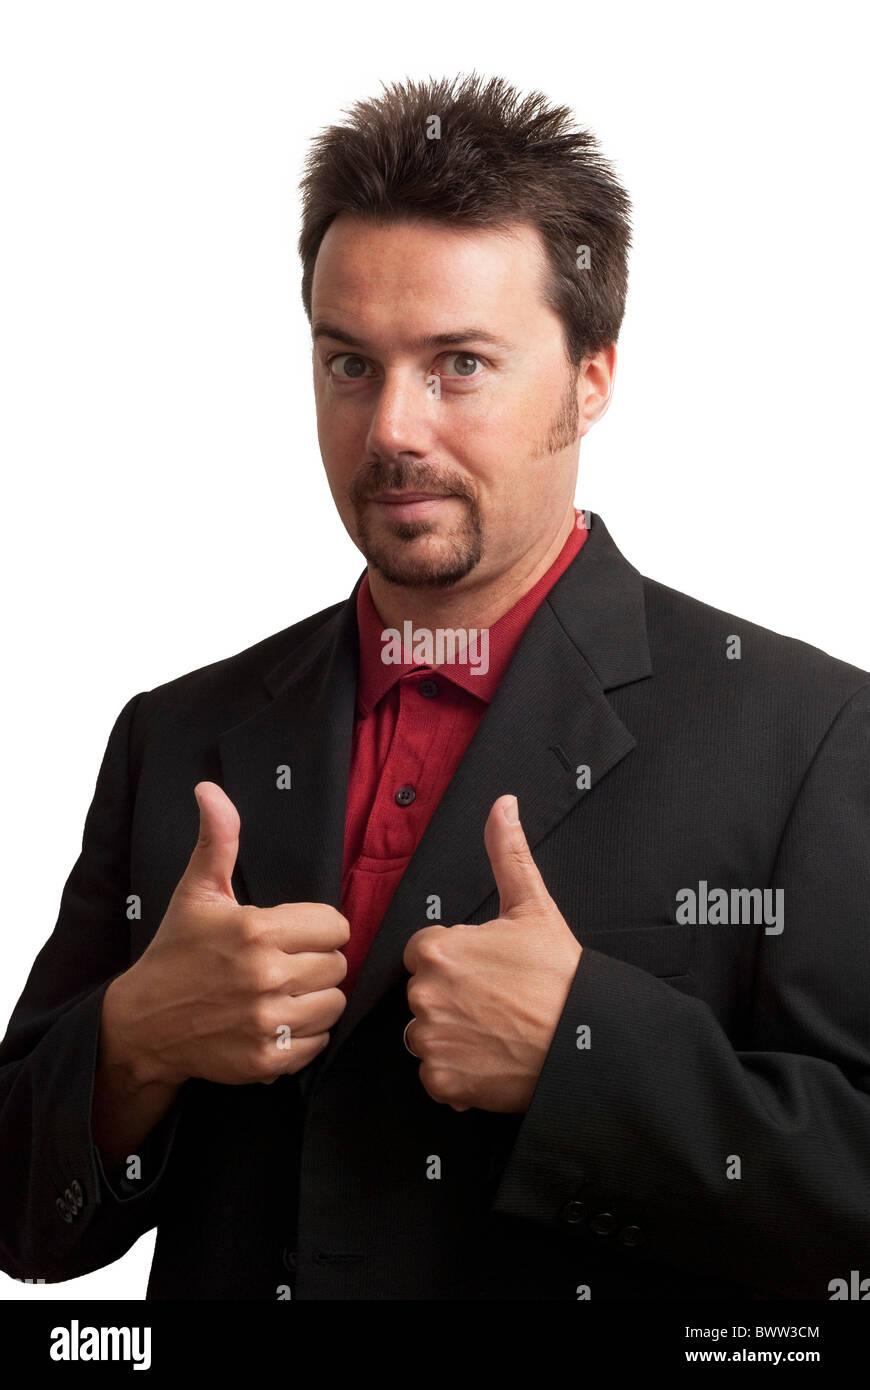 Nerdy looking business man, giving thumbs up. Studio Shot on white background - Stock Image